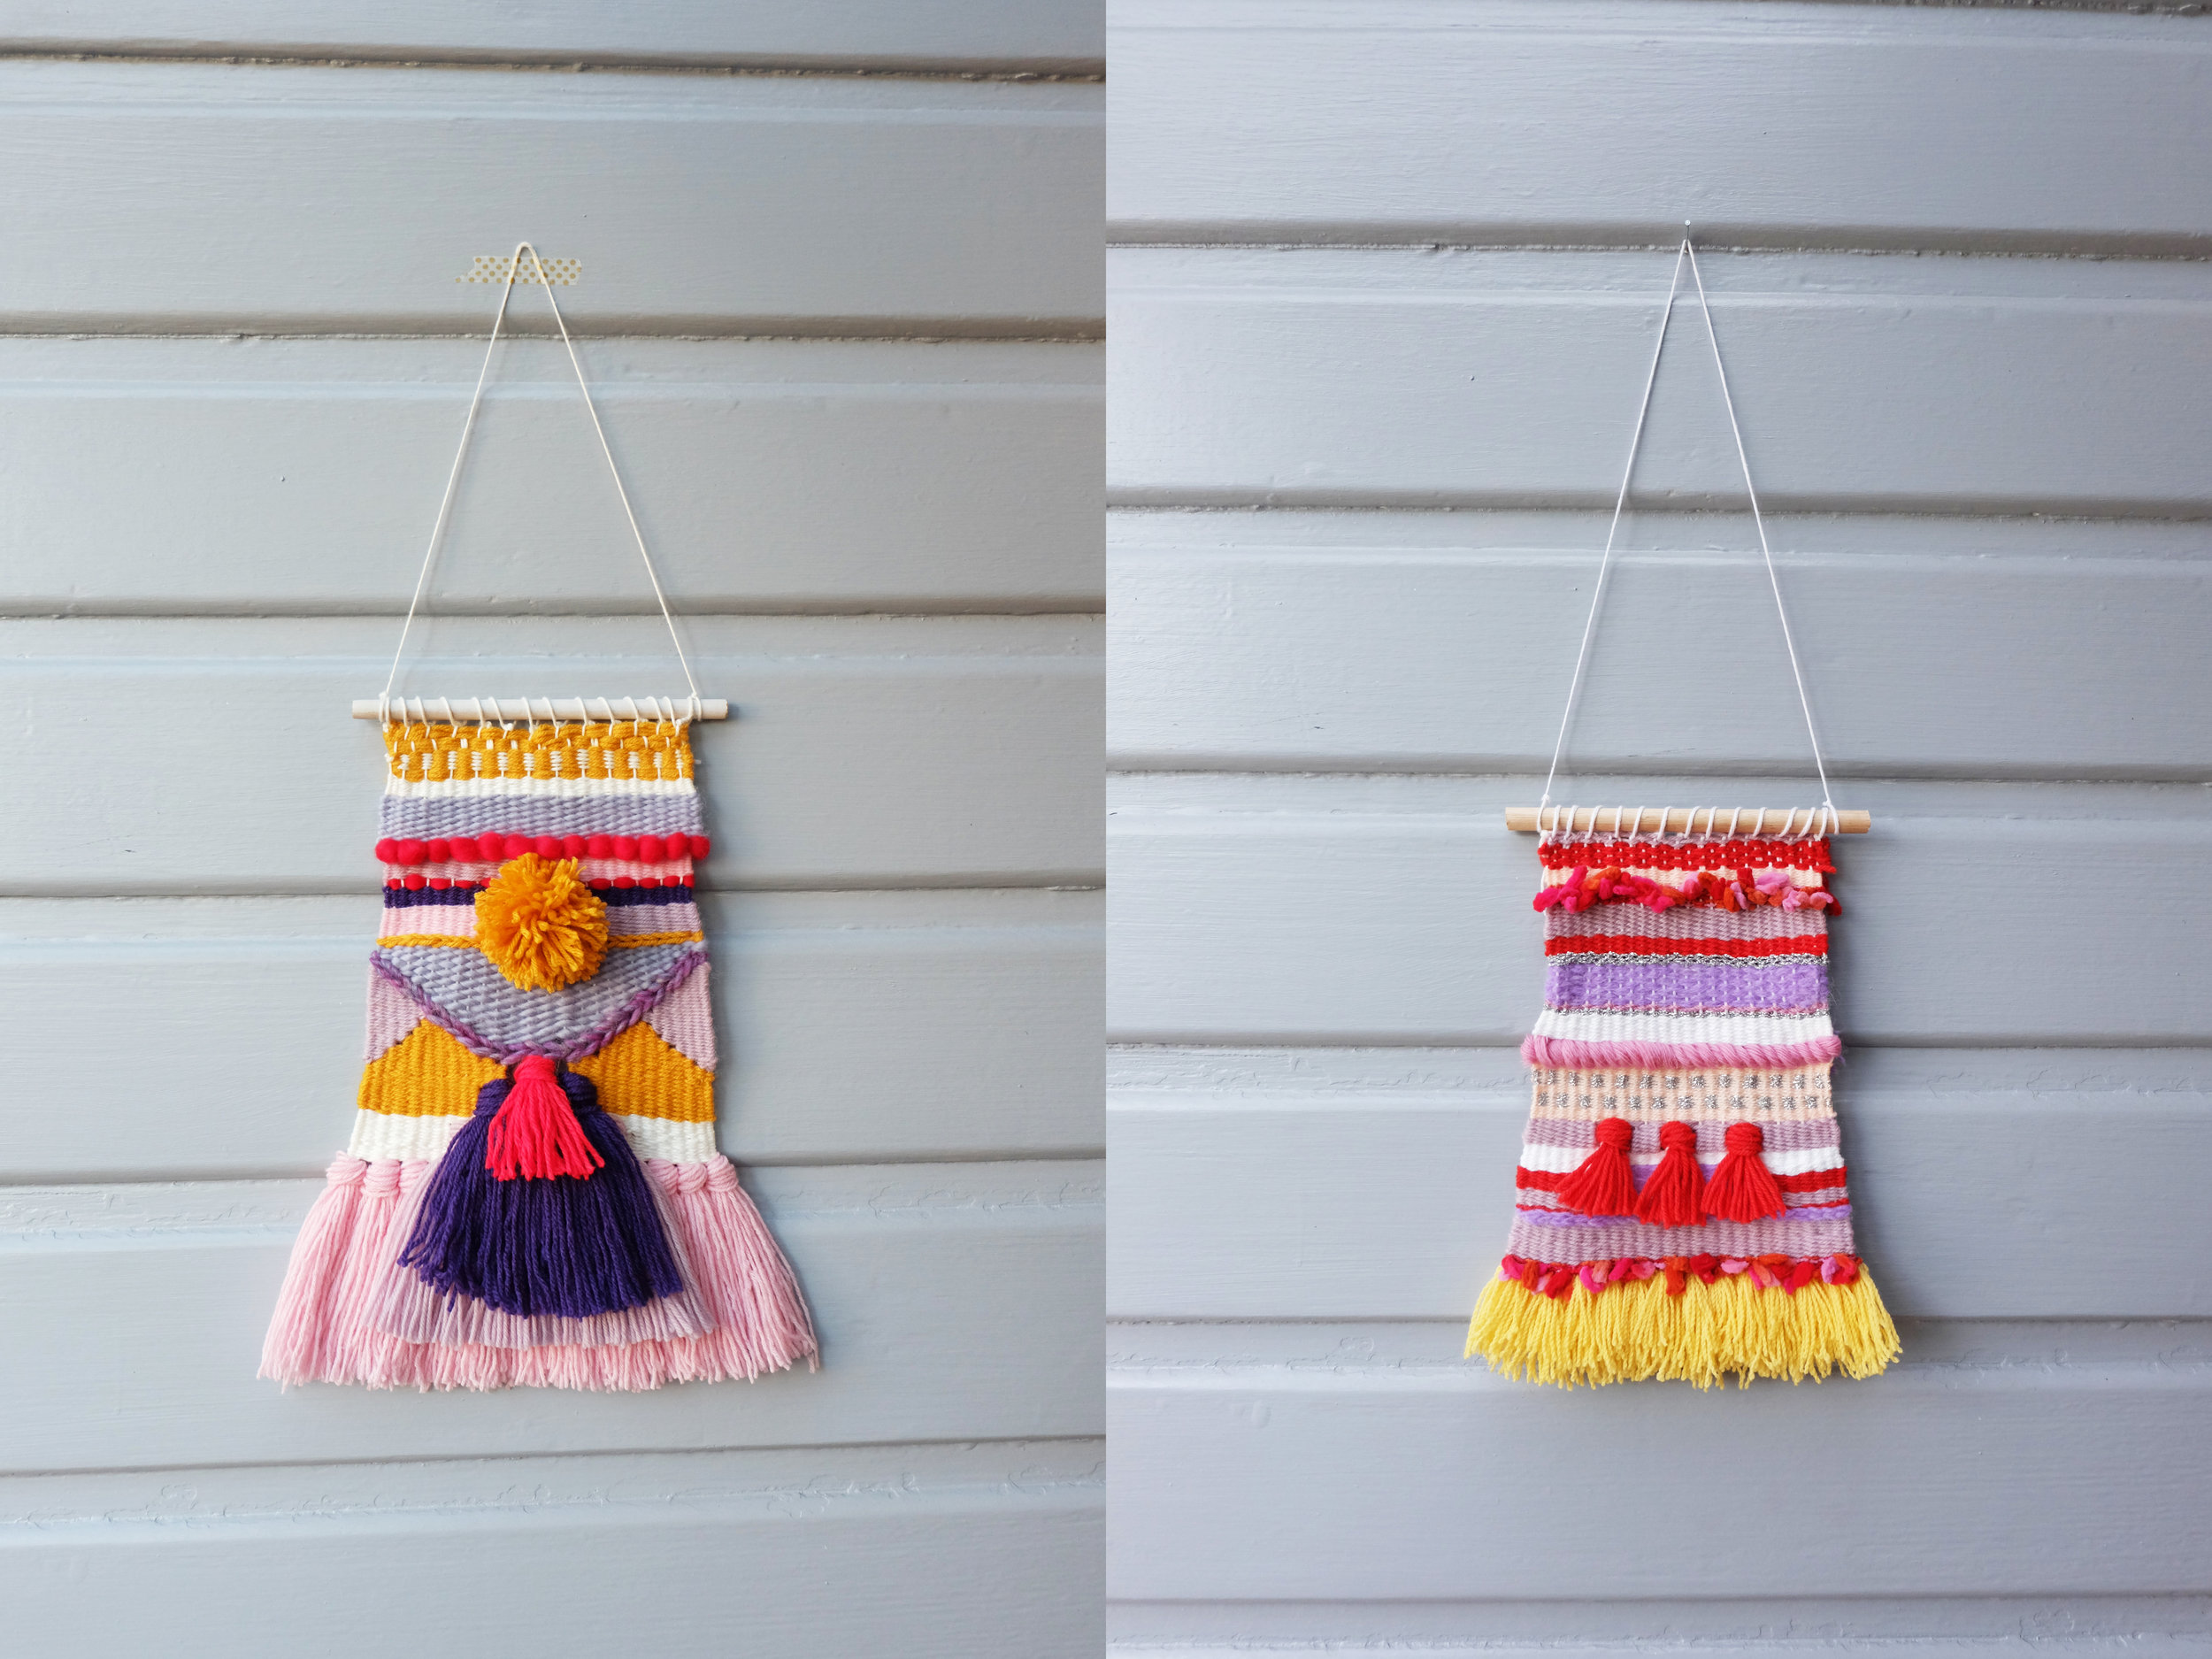 Left: A weaving for my friend Jaine for Christmas. Right: A weaving for my sister Sarah for Christmas.